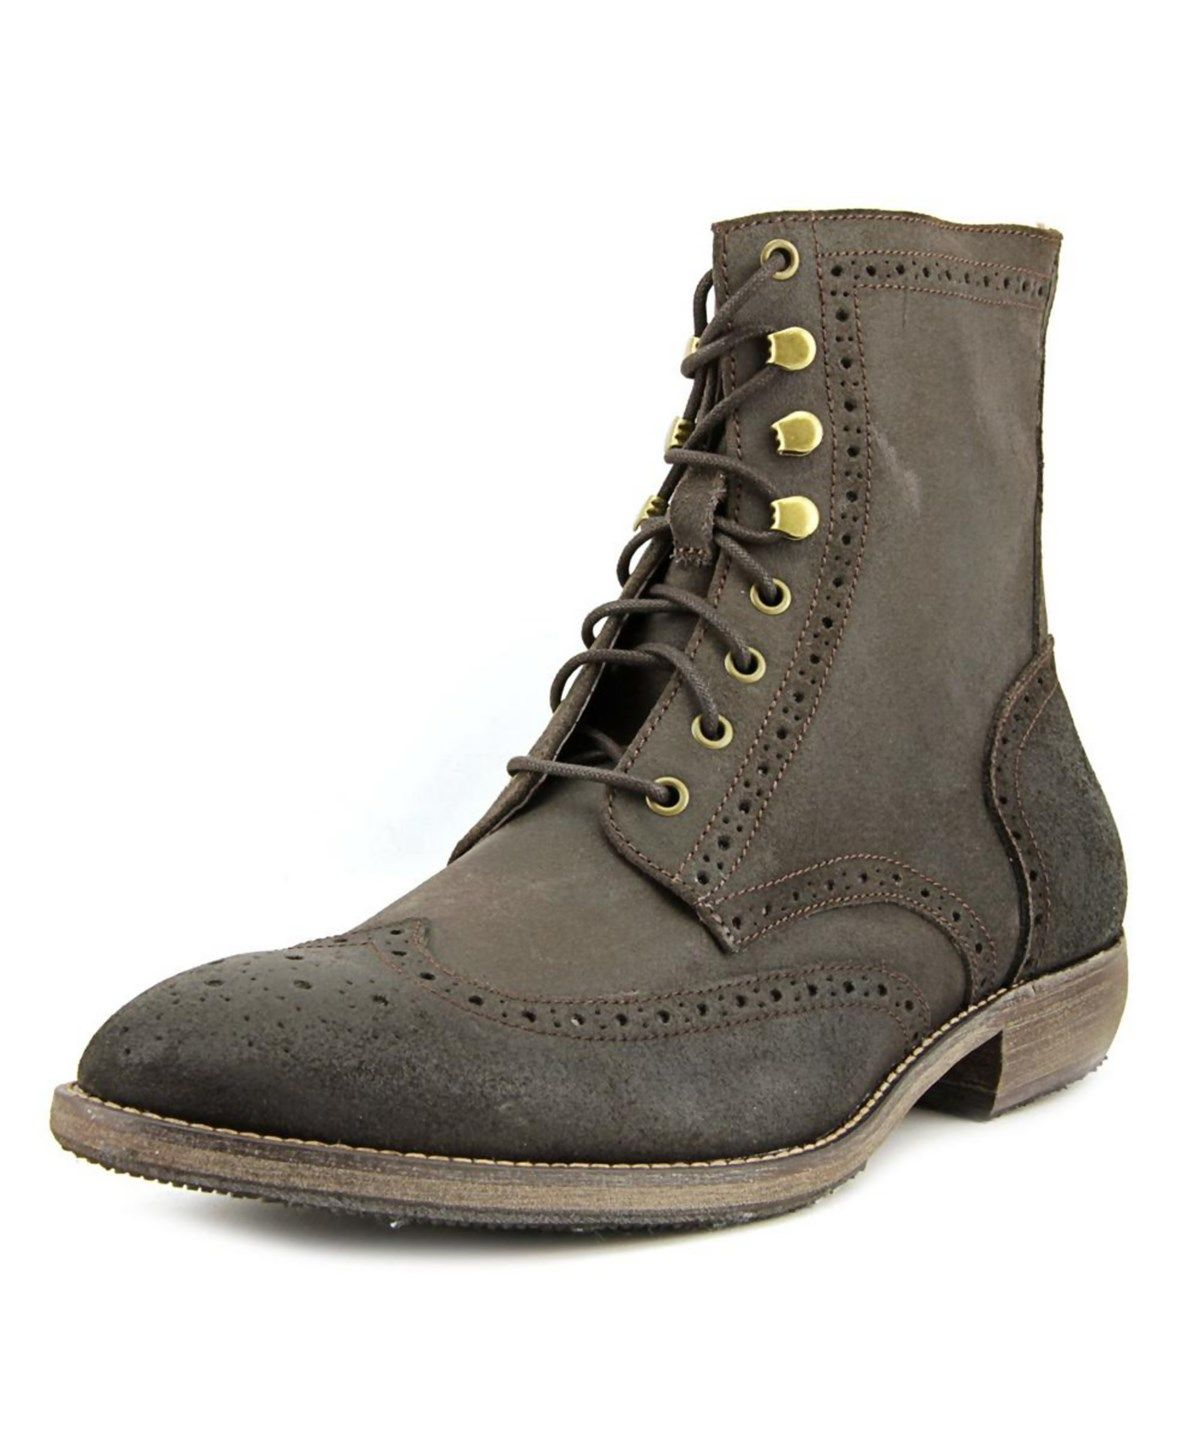 ANDREW MARC ANDREW MARC HILLCREST WINGTIP TOE LEATHER BOOT'. #andrewmarc # shoes #